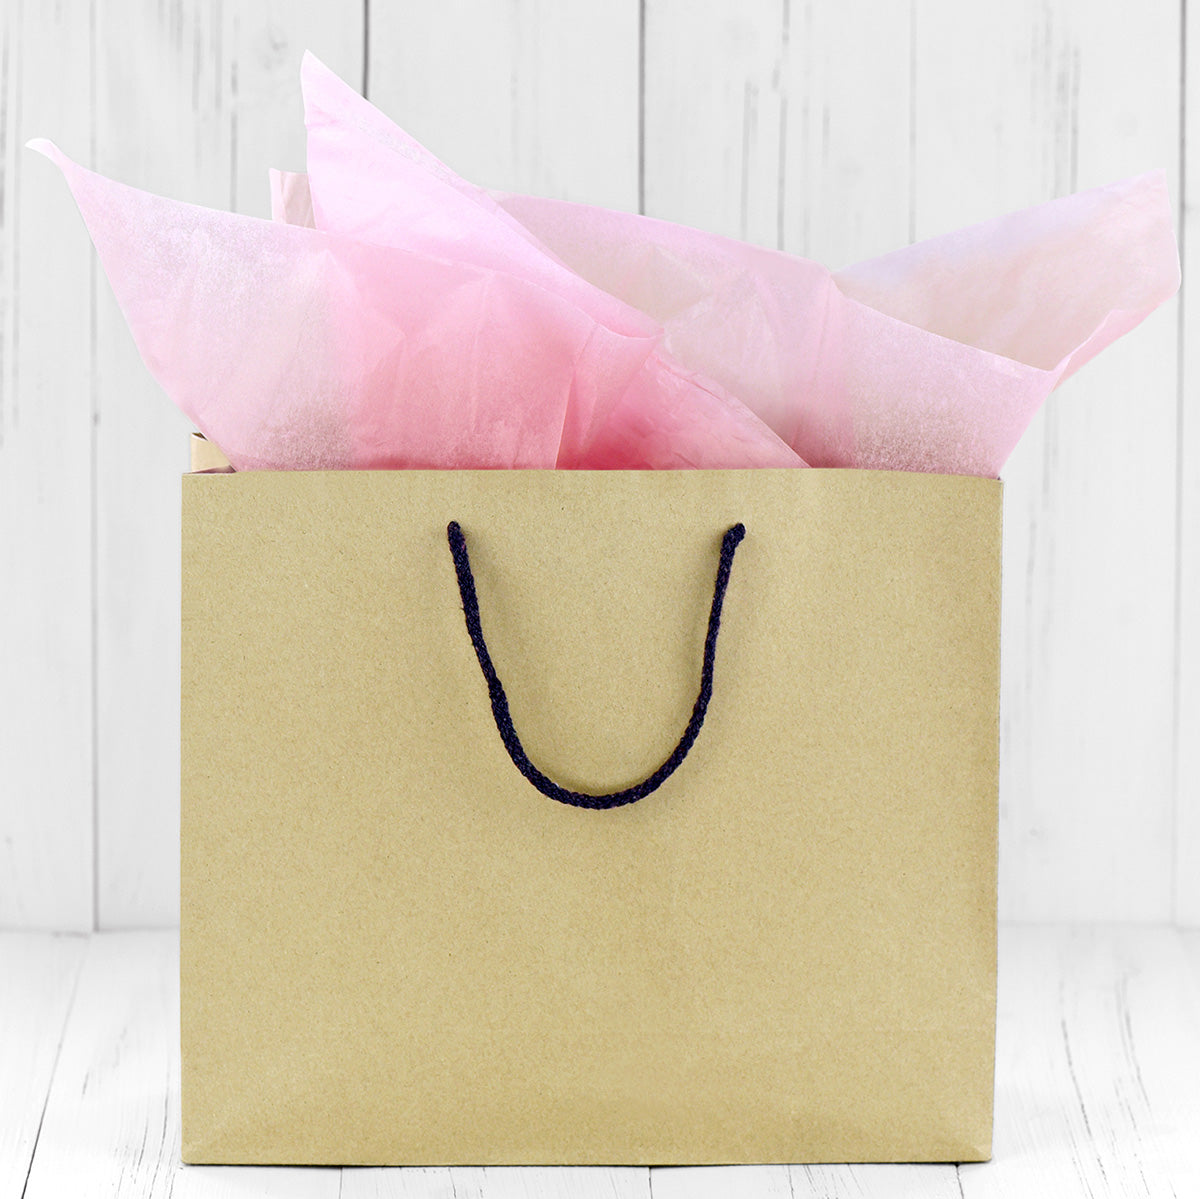 50 Sheets Pink Wrapping Tissue Paper